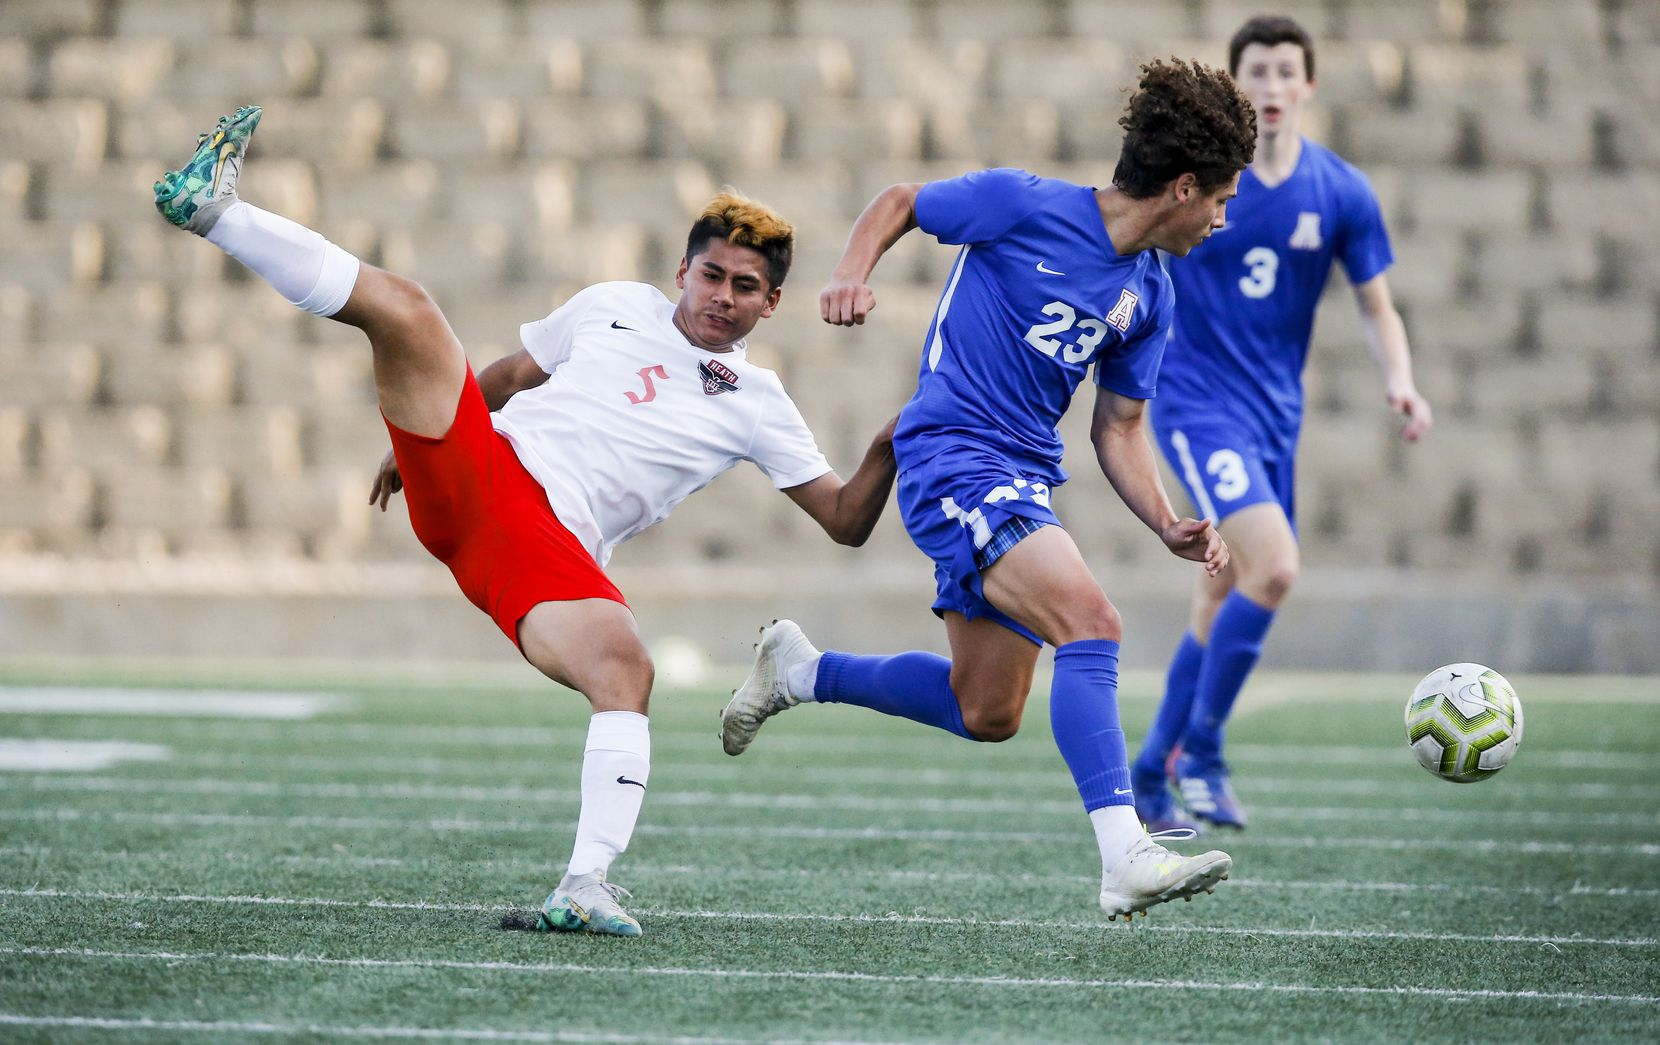 Allen junior midfielder Ayden Mendoza (23) steals the ball from Rockwall-Heath senior midfielder Gabriel Anguiano (5) during the first half of a boys soccer Class 6A state semifinal at Mesquite Memorial Stadium in Mesquite, Tuesday, April 13, 2021. (Brandon Wade/Special Contributor)